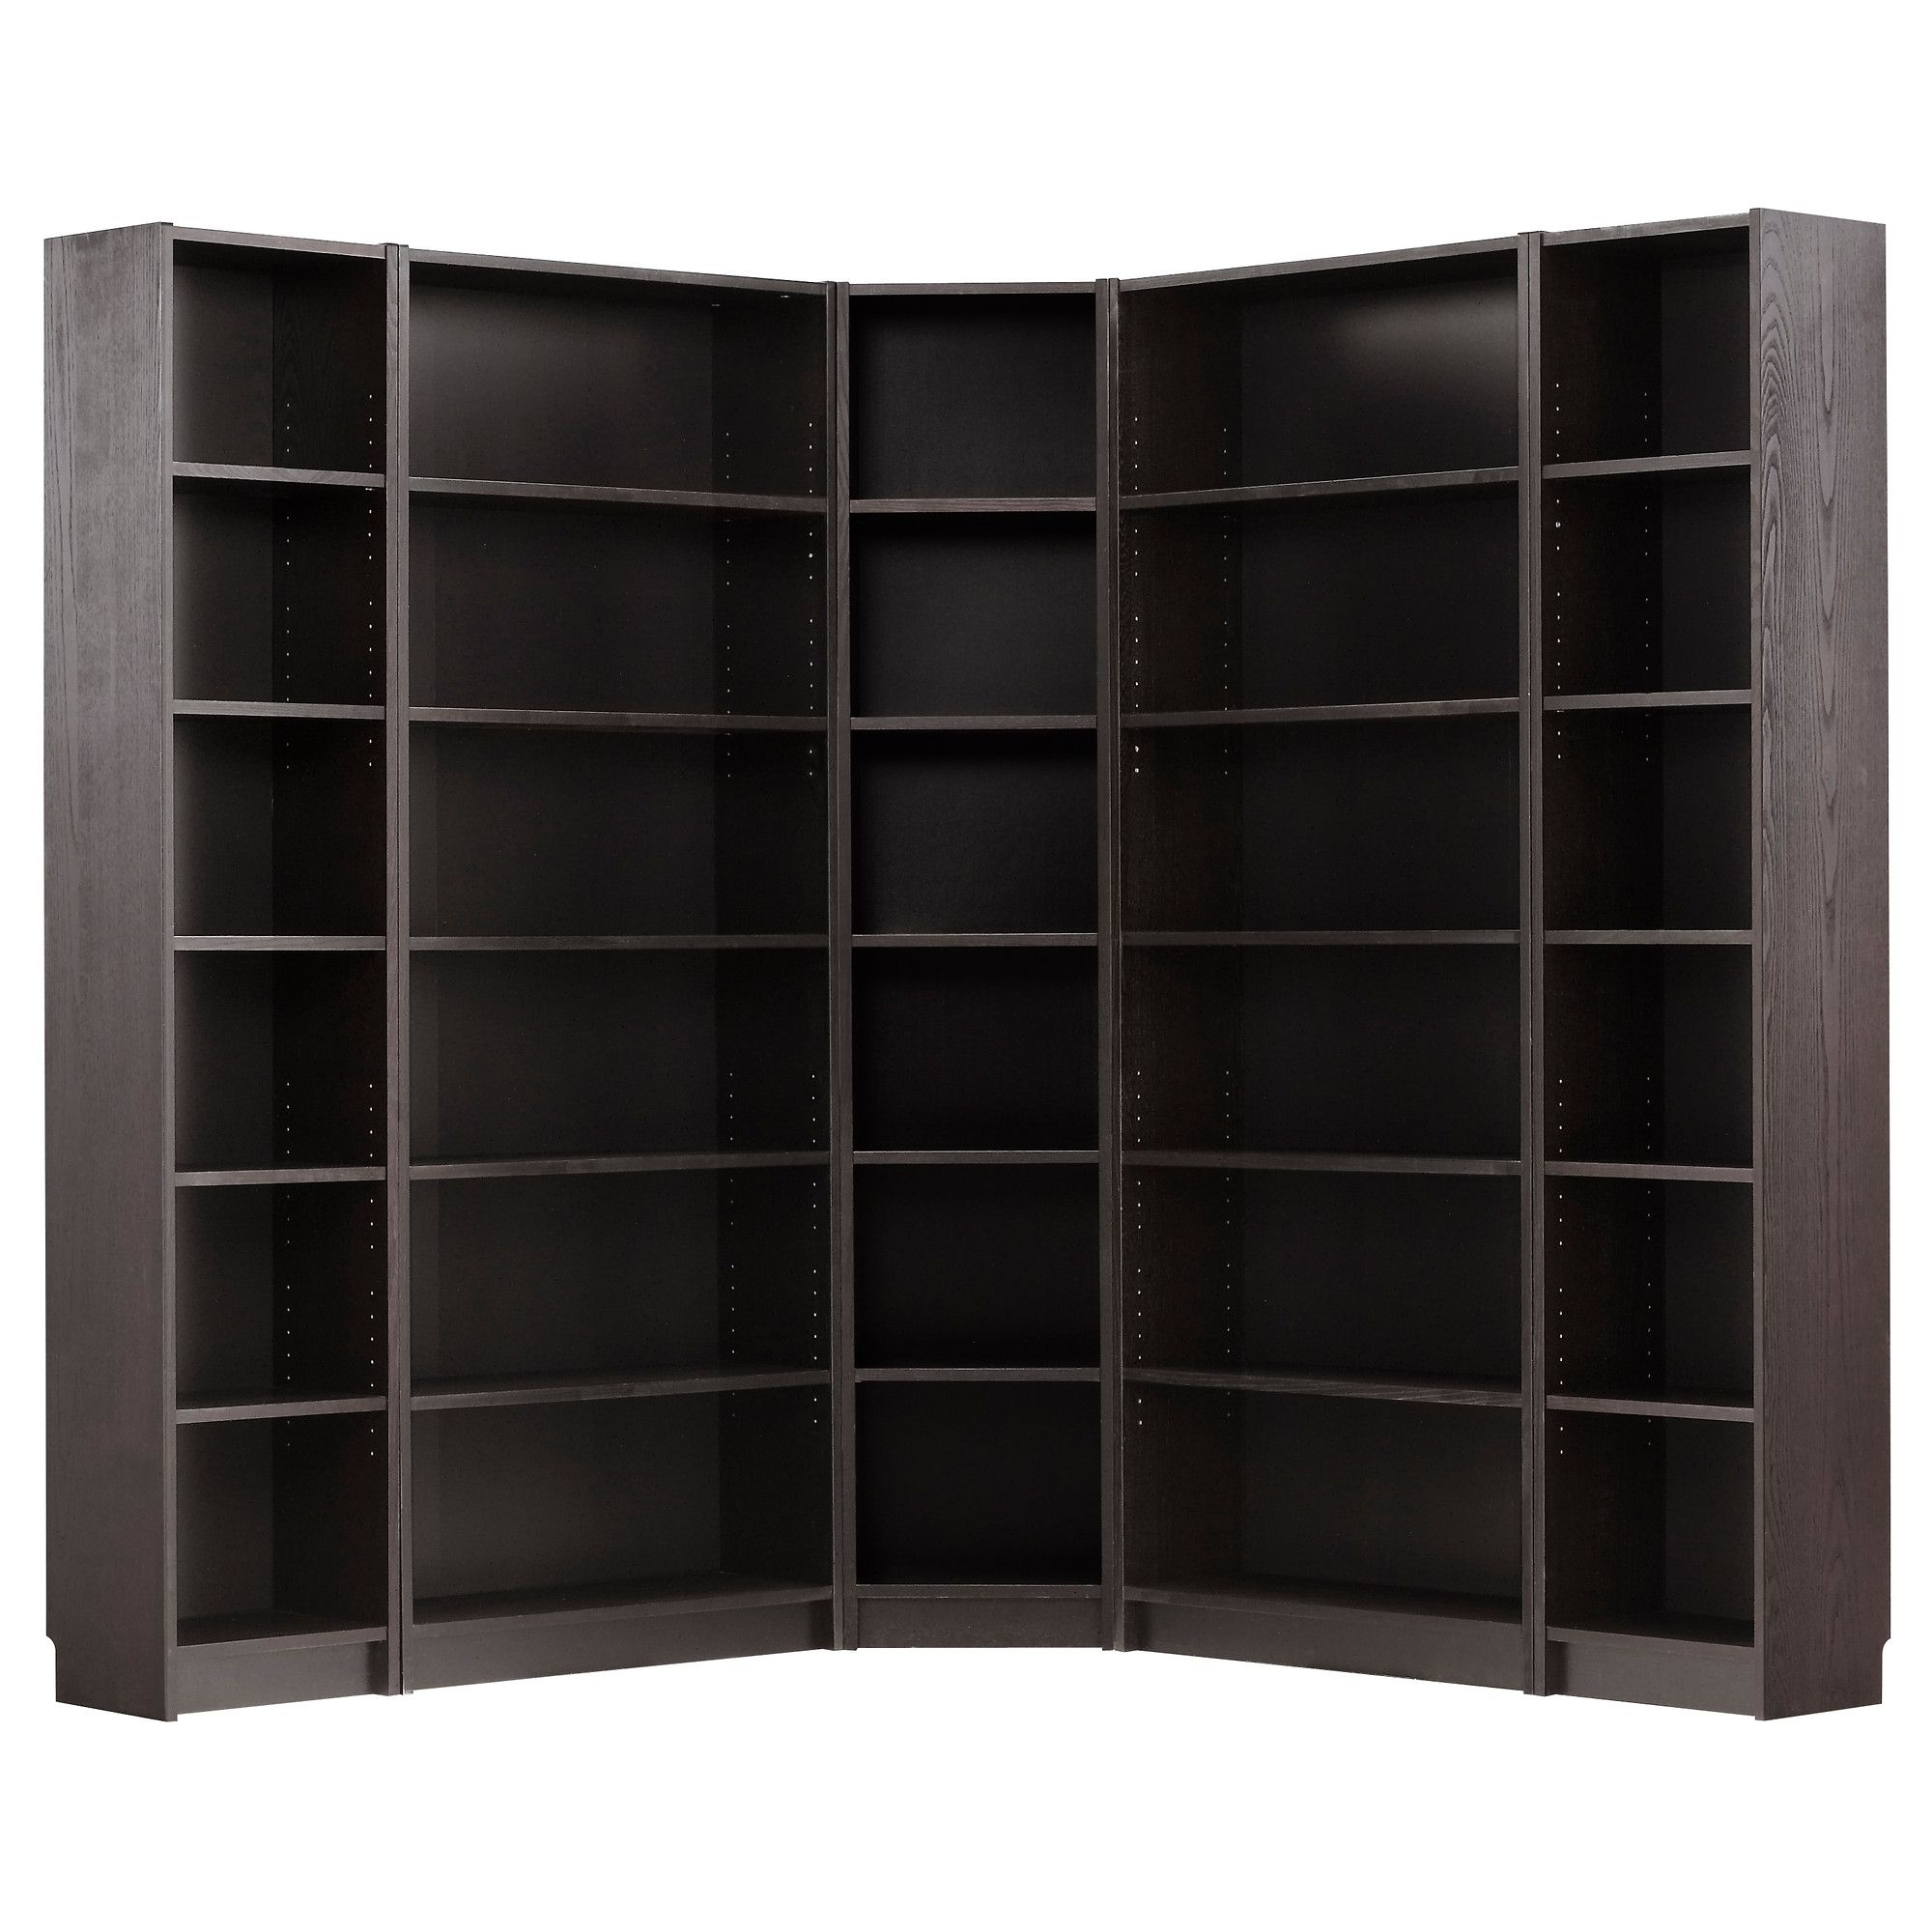 $322 BILLY Corner bination black brown IKEA